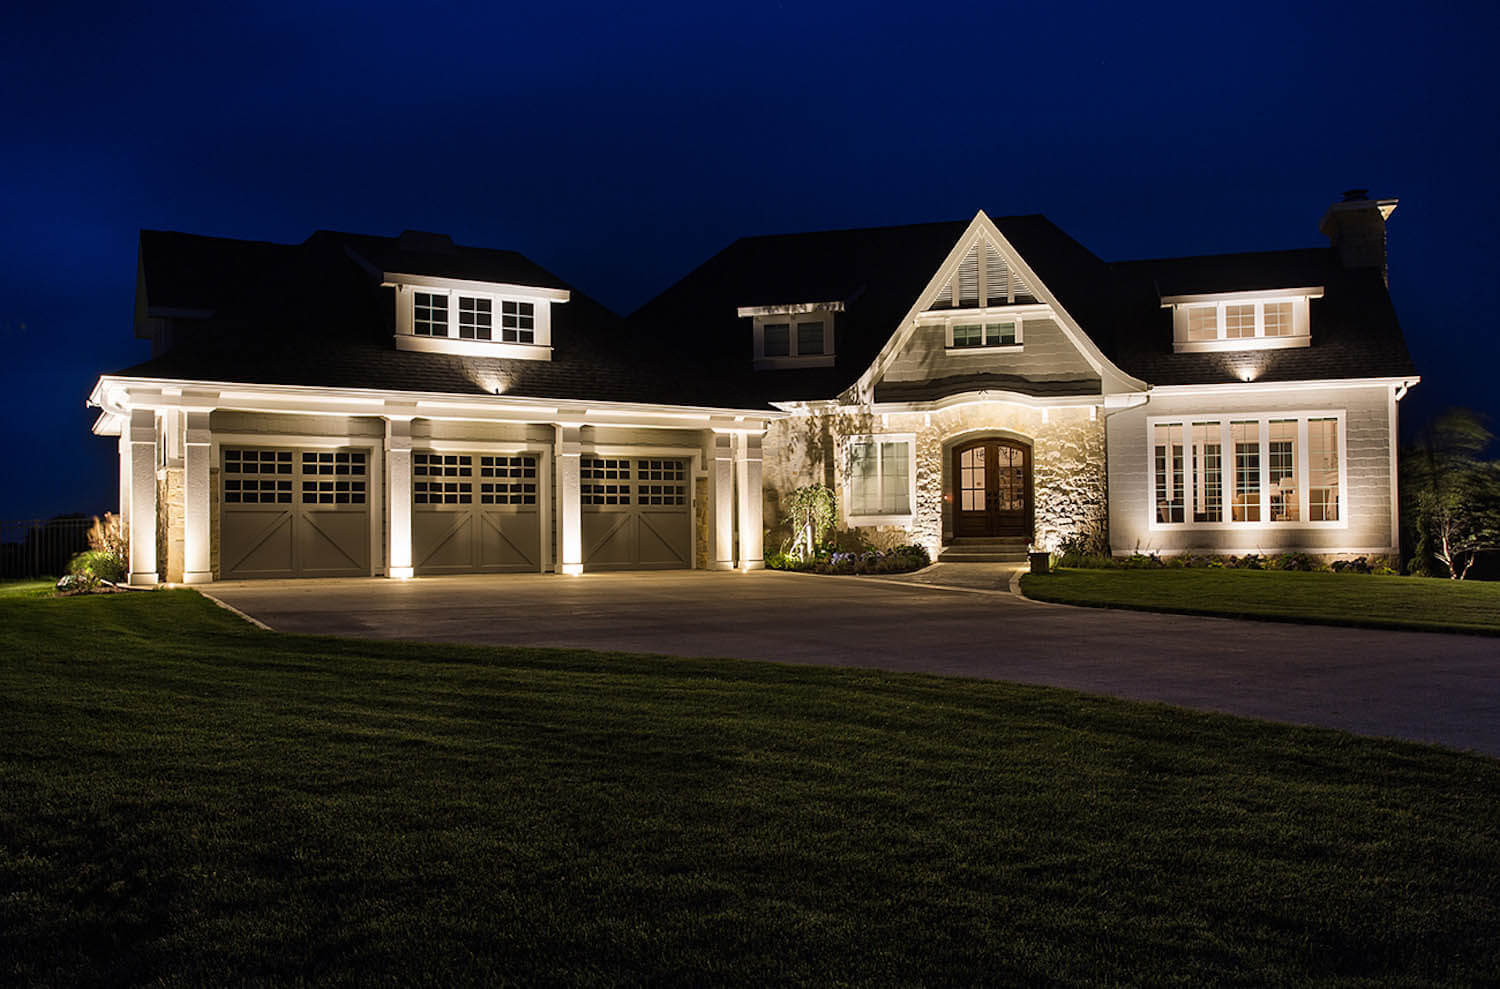 Home Exterior at Night